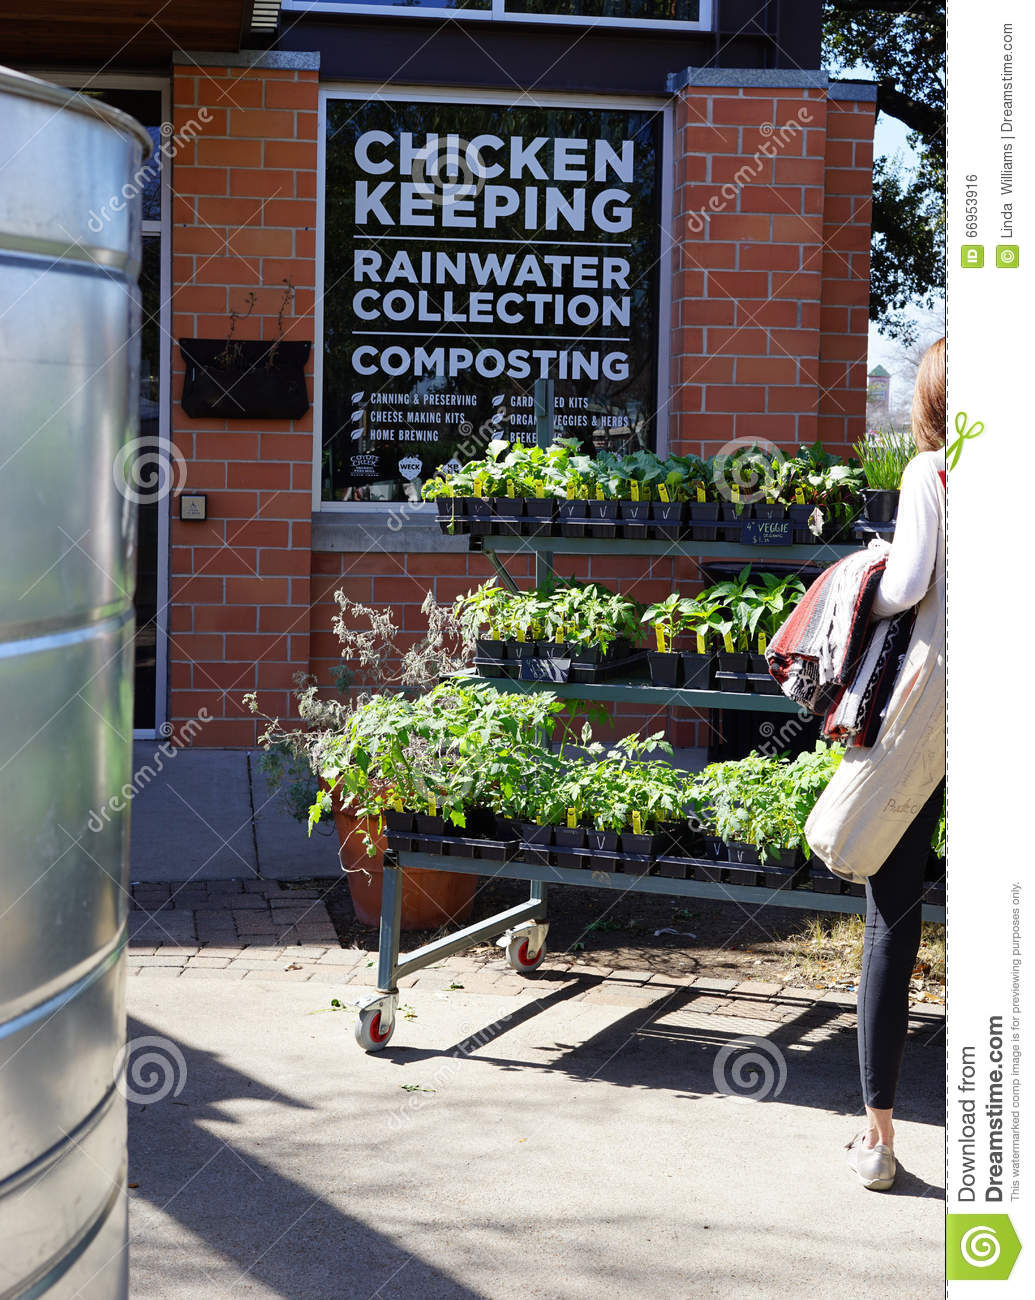 Diy Chicken Keeping And Rainwater Collection Editorial Photo Image 66953916